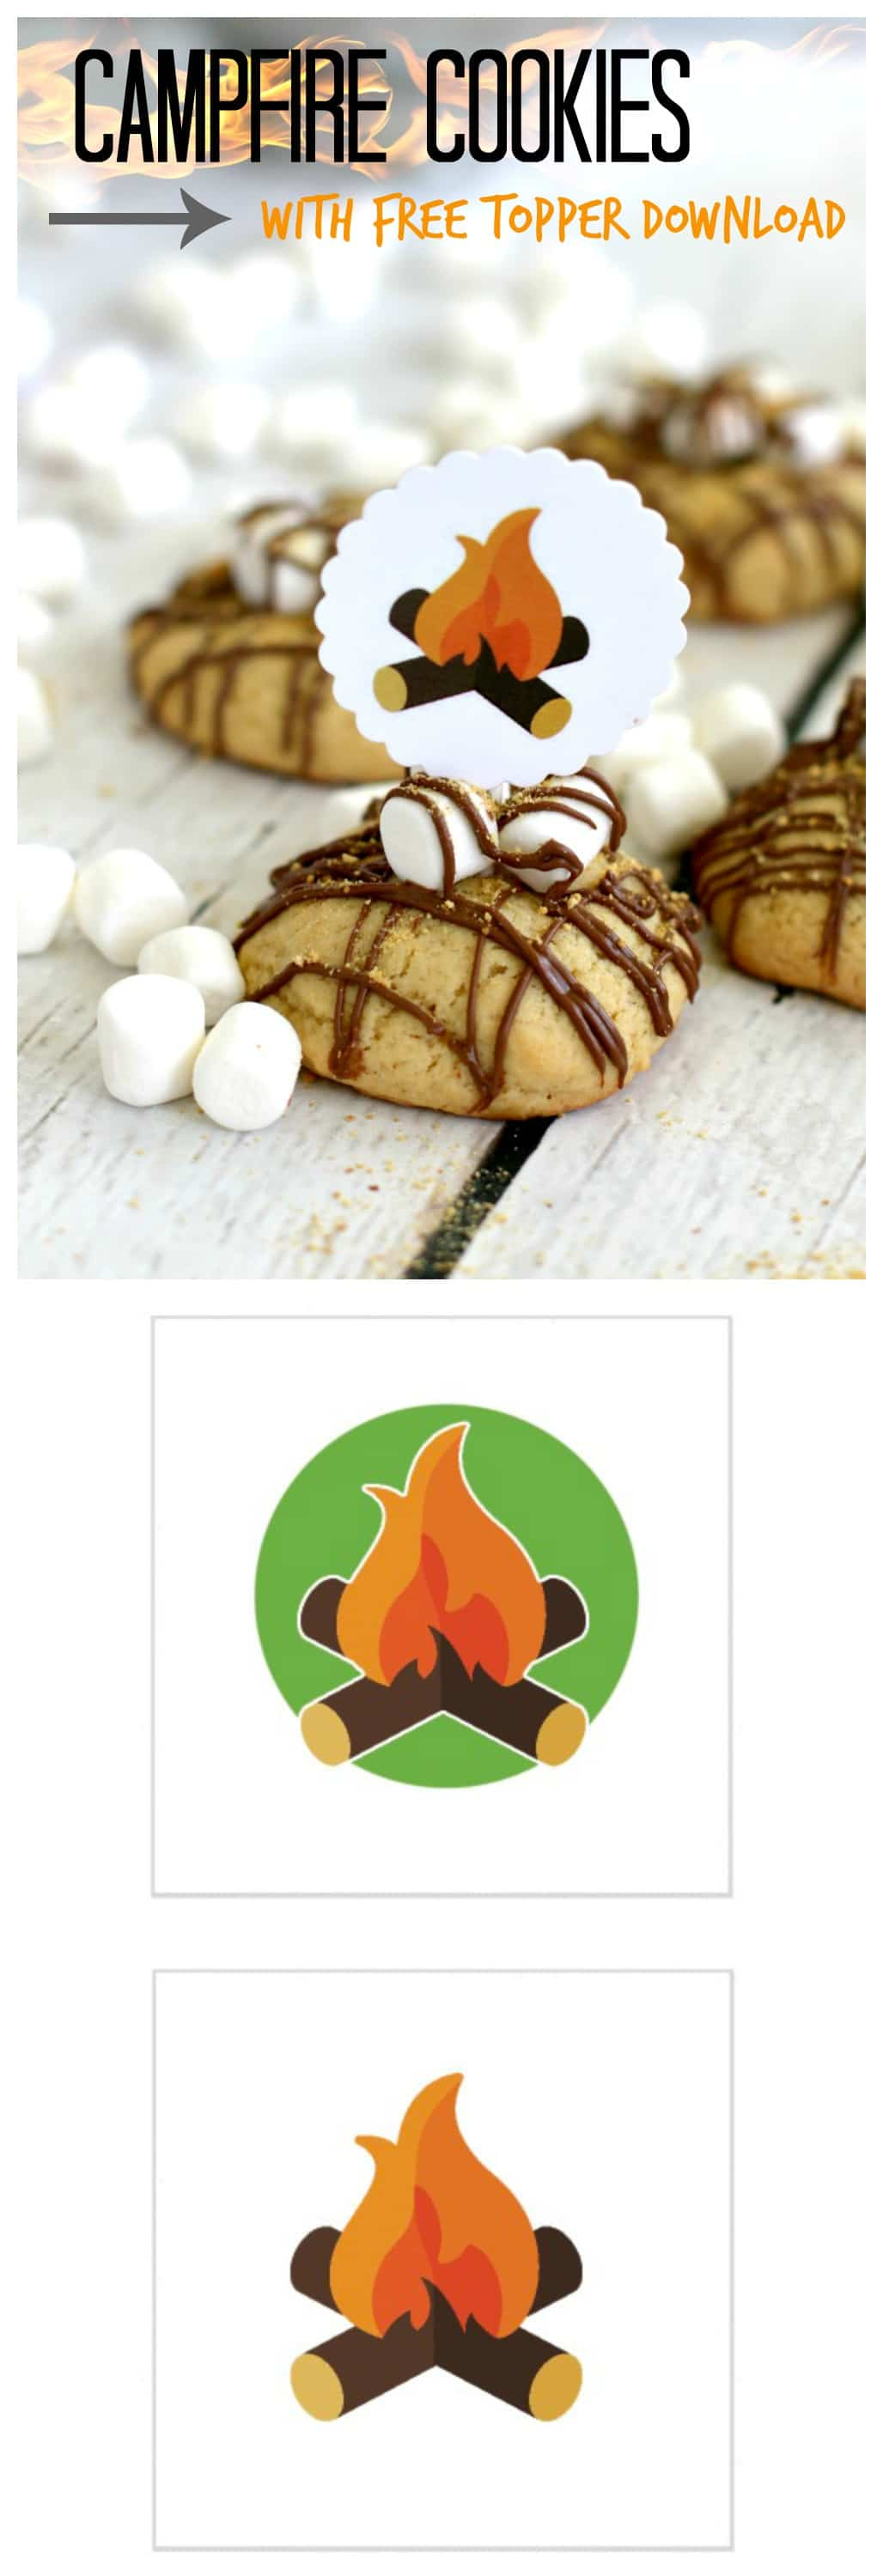 Campfire Cookies with FREE PRINTABLE: Tastes like S'mores but on a cookie, which means you can have it ANYTIME not just outdoor time! Get Recipe and FREE PRINTABLE HERE